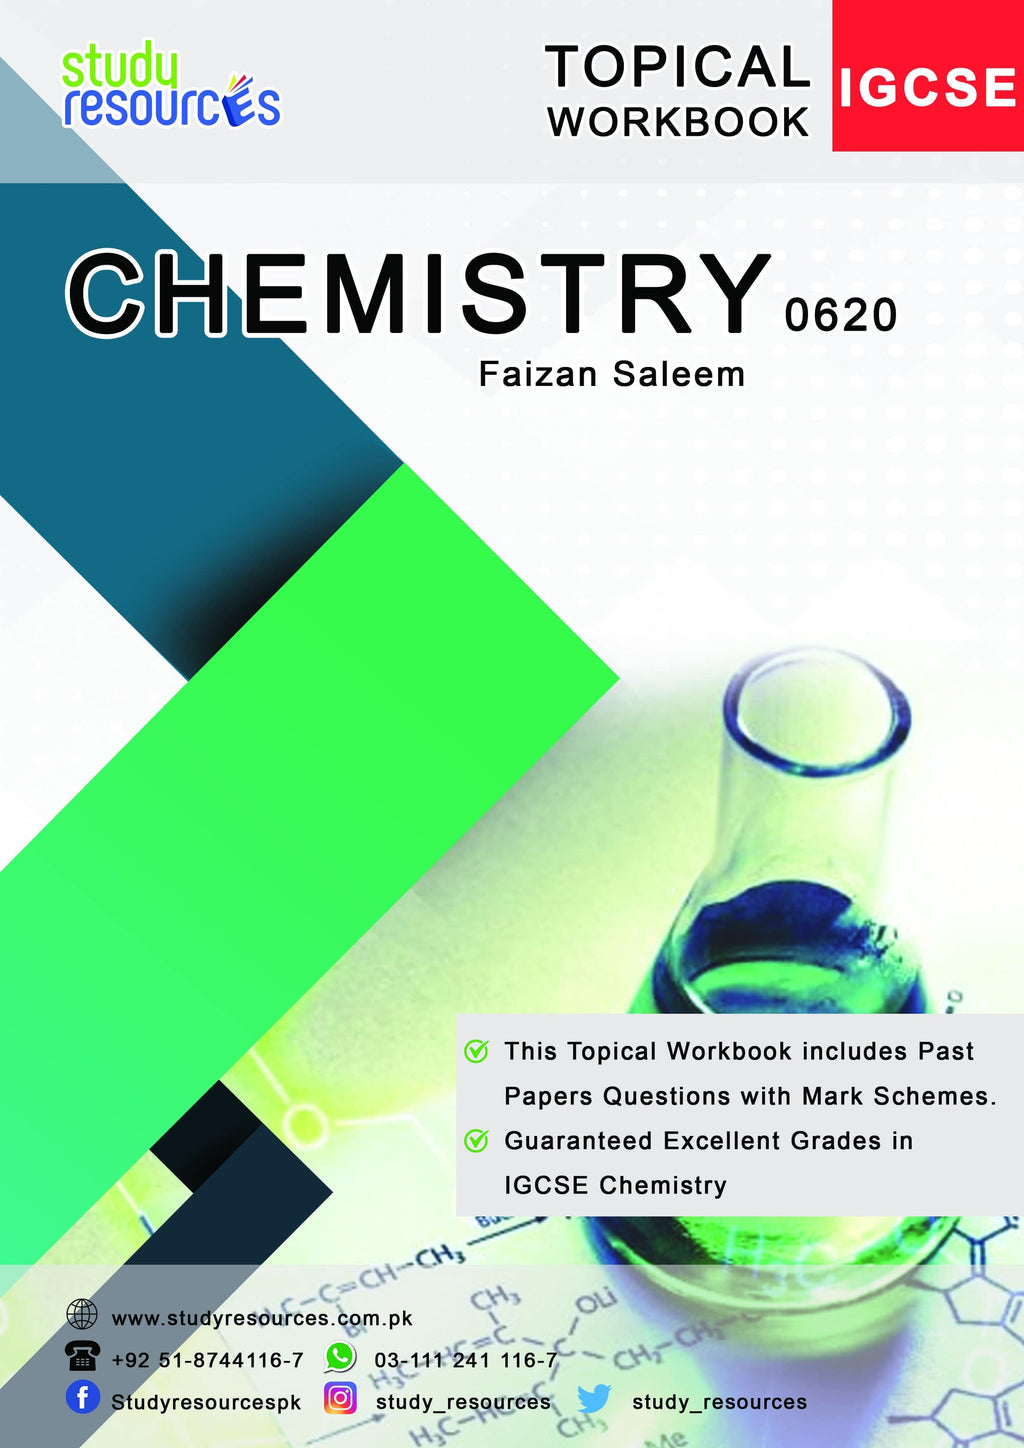 Cambridge IGCSE Chemistry (0620) Topical Workbook by Sir Faizan Saleem